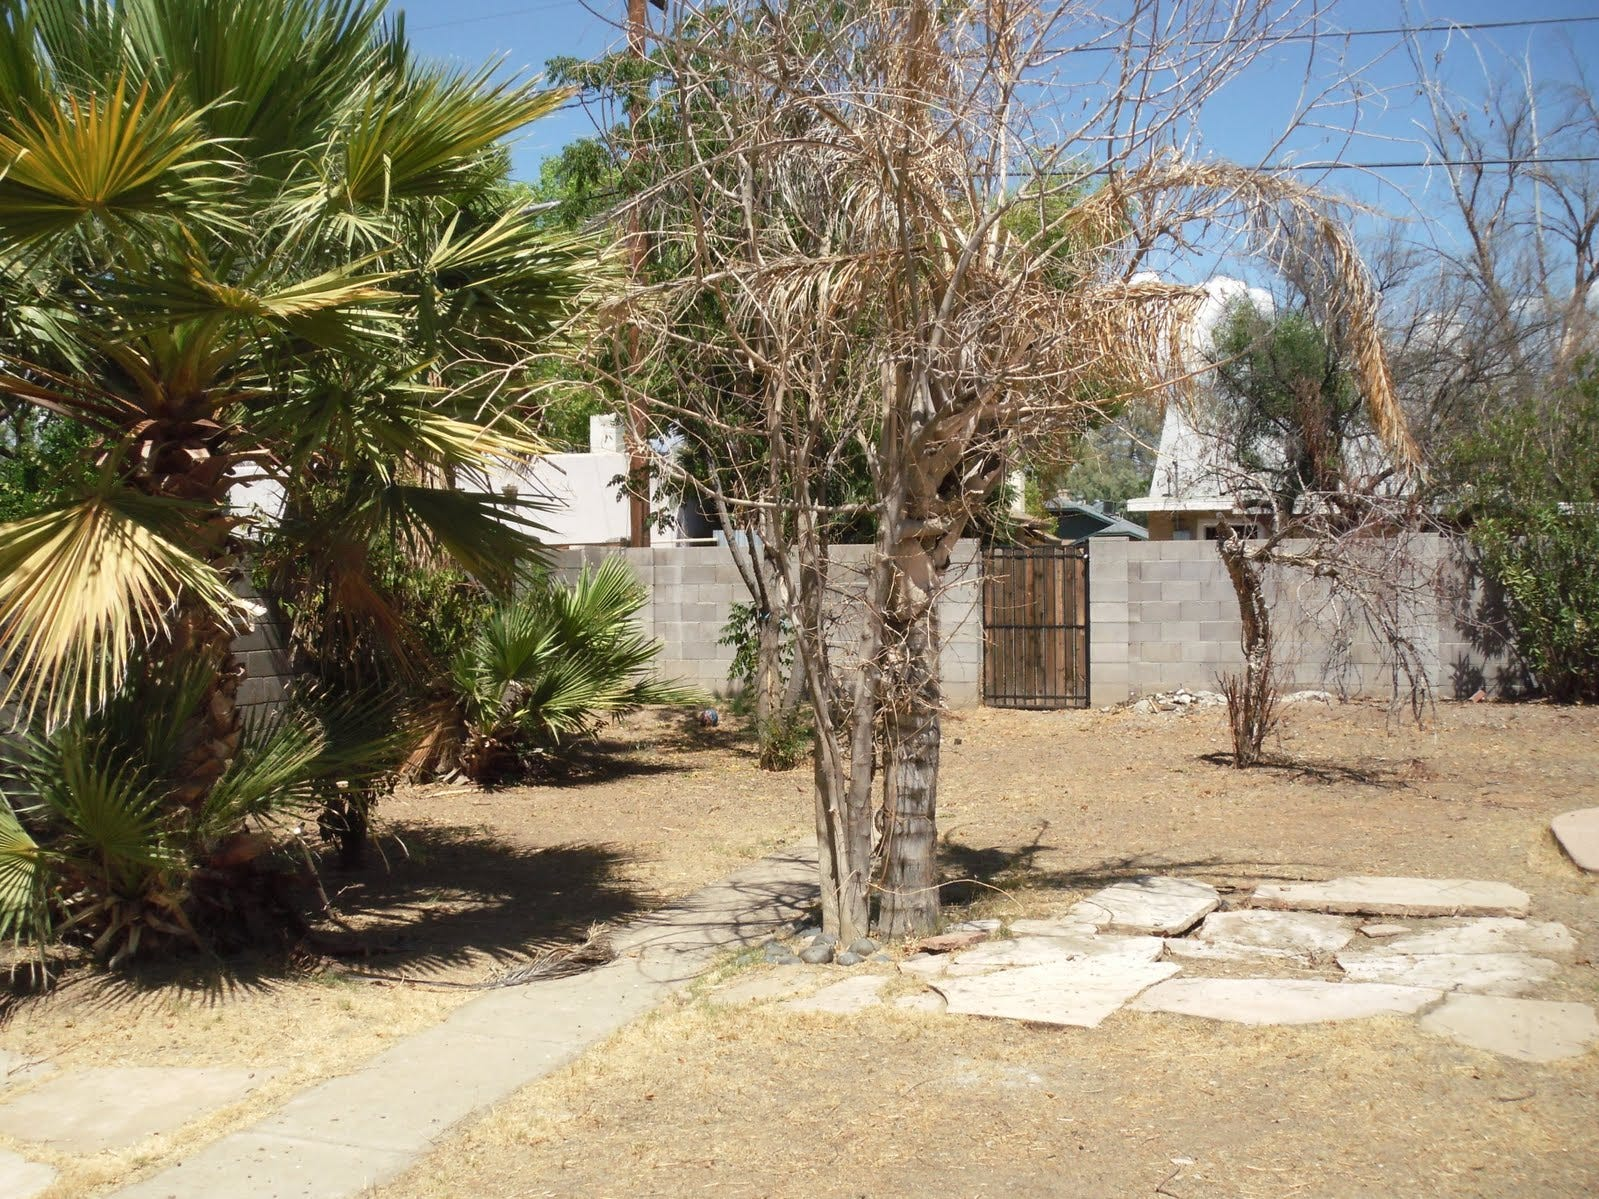 2010 picture of the back yard, where the guest house was built after home owners Paul Hennings and Sheila Krueger bought the property.